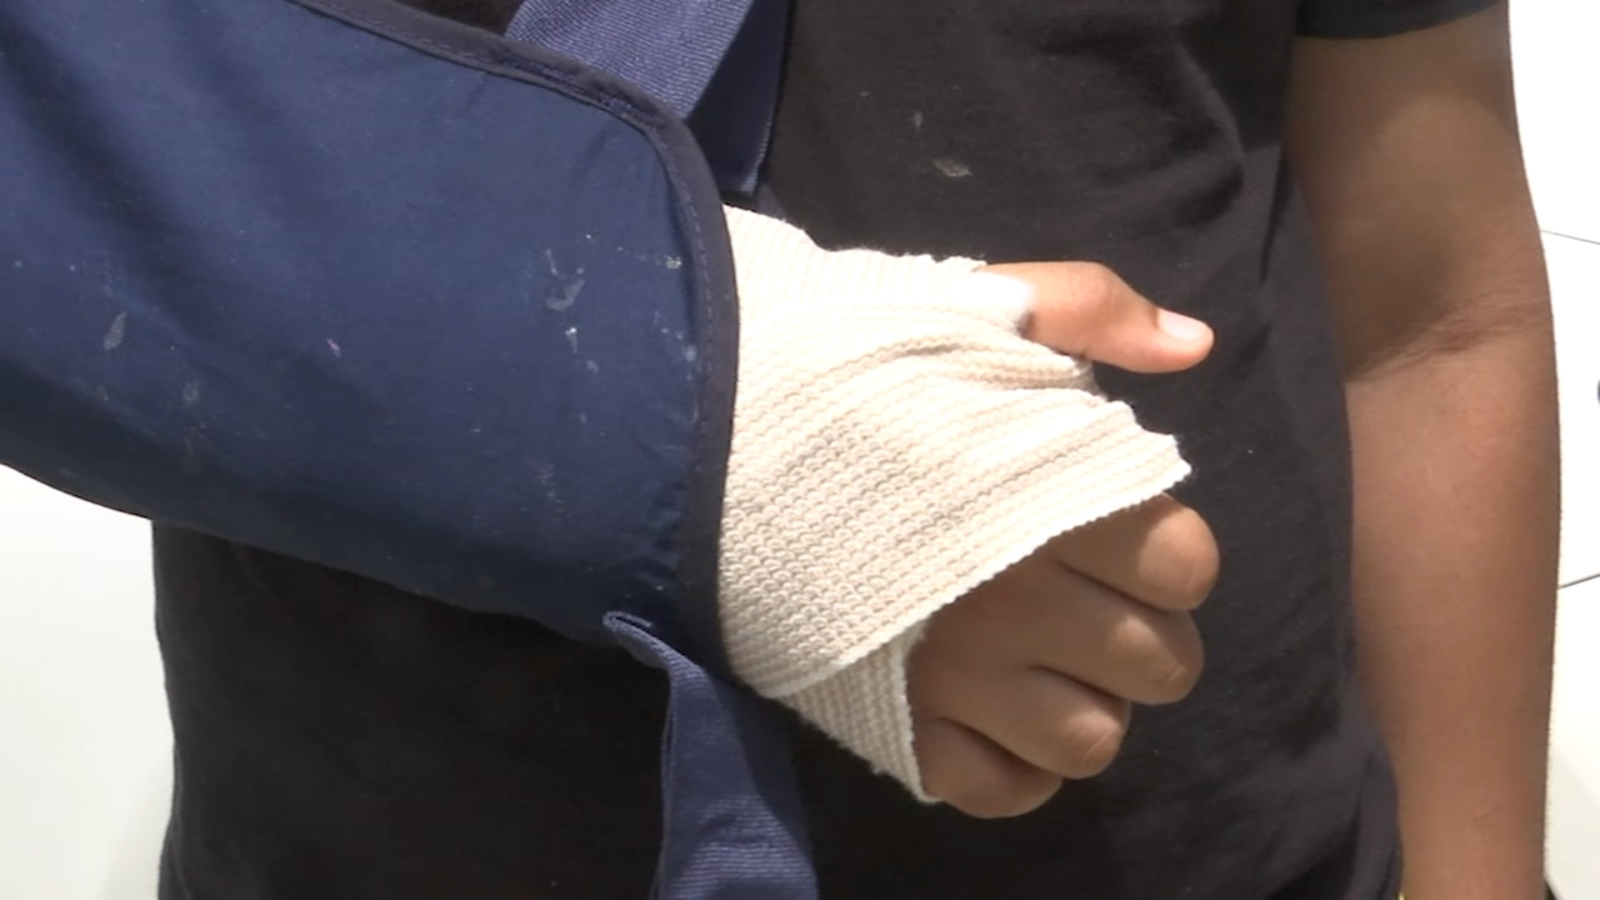 12-year-old's arm broken by Spring ISD coach during practice drill, dad says